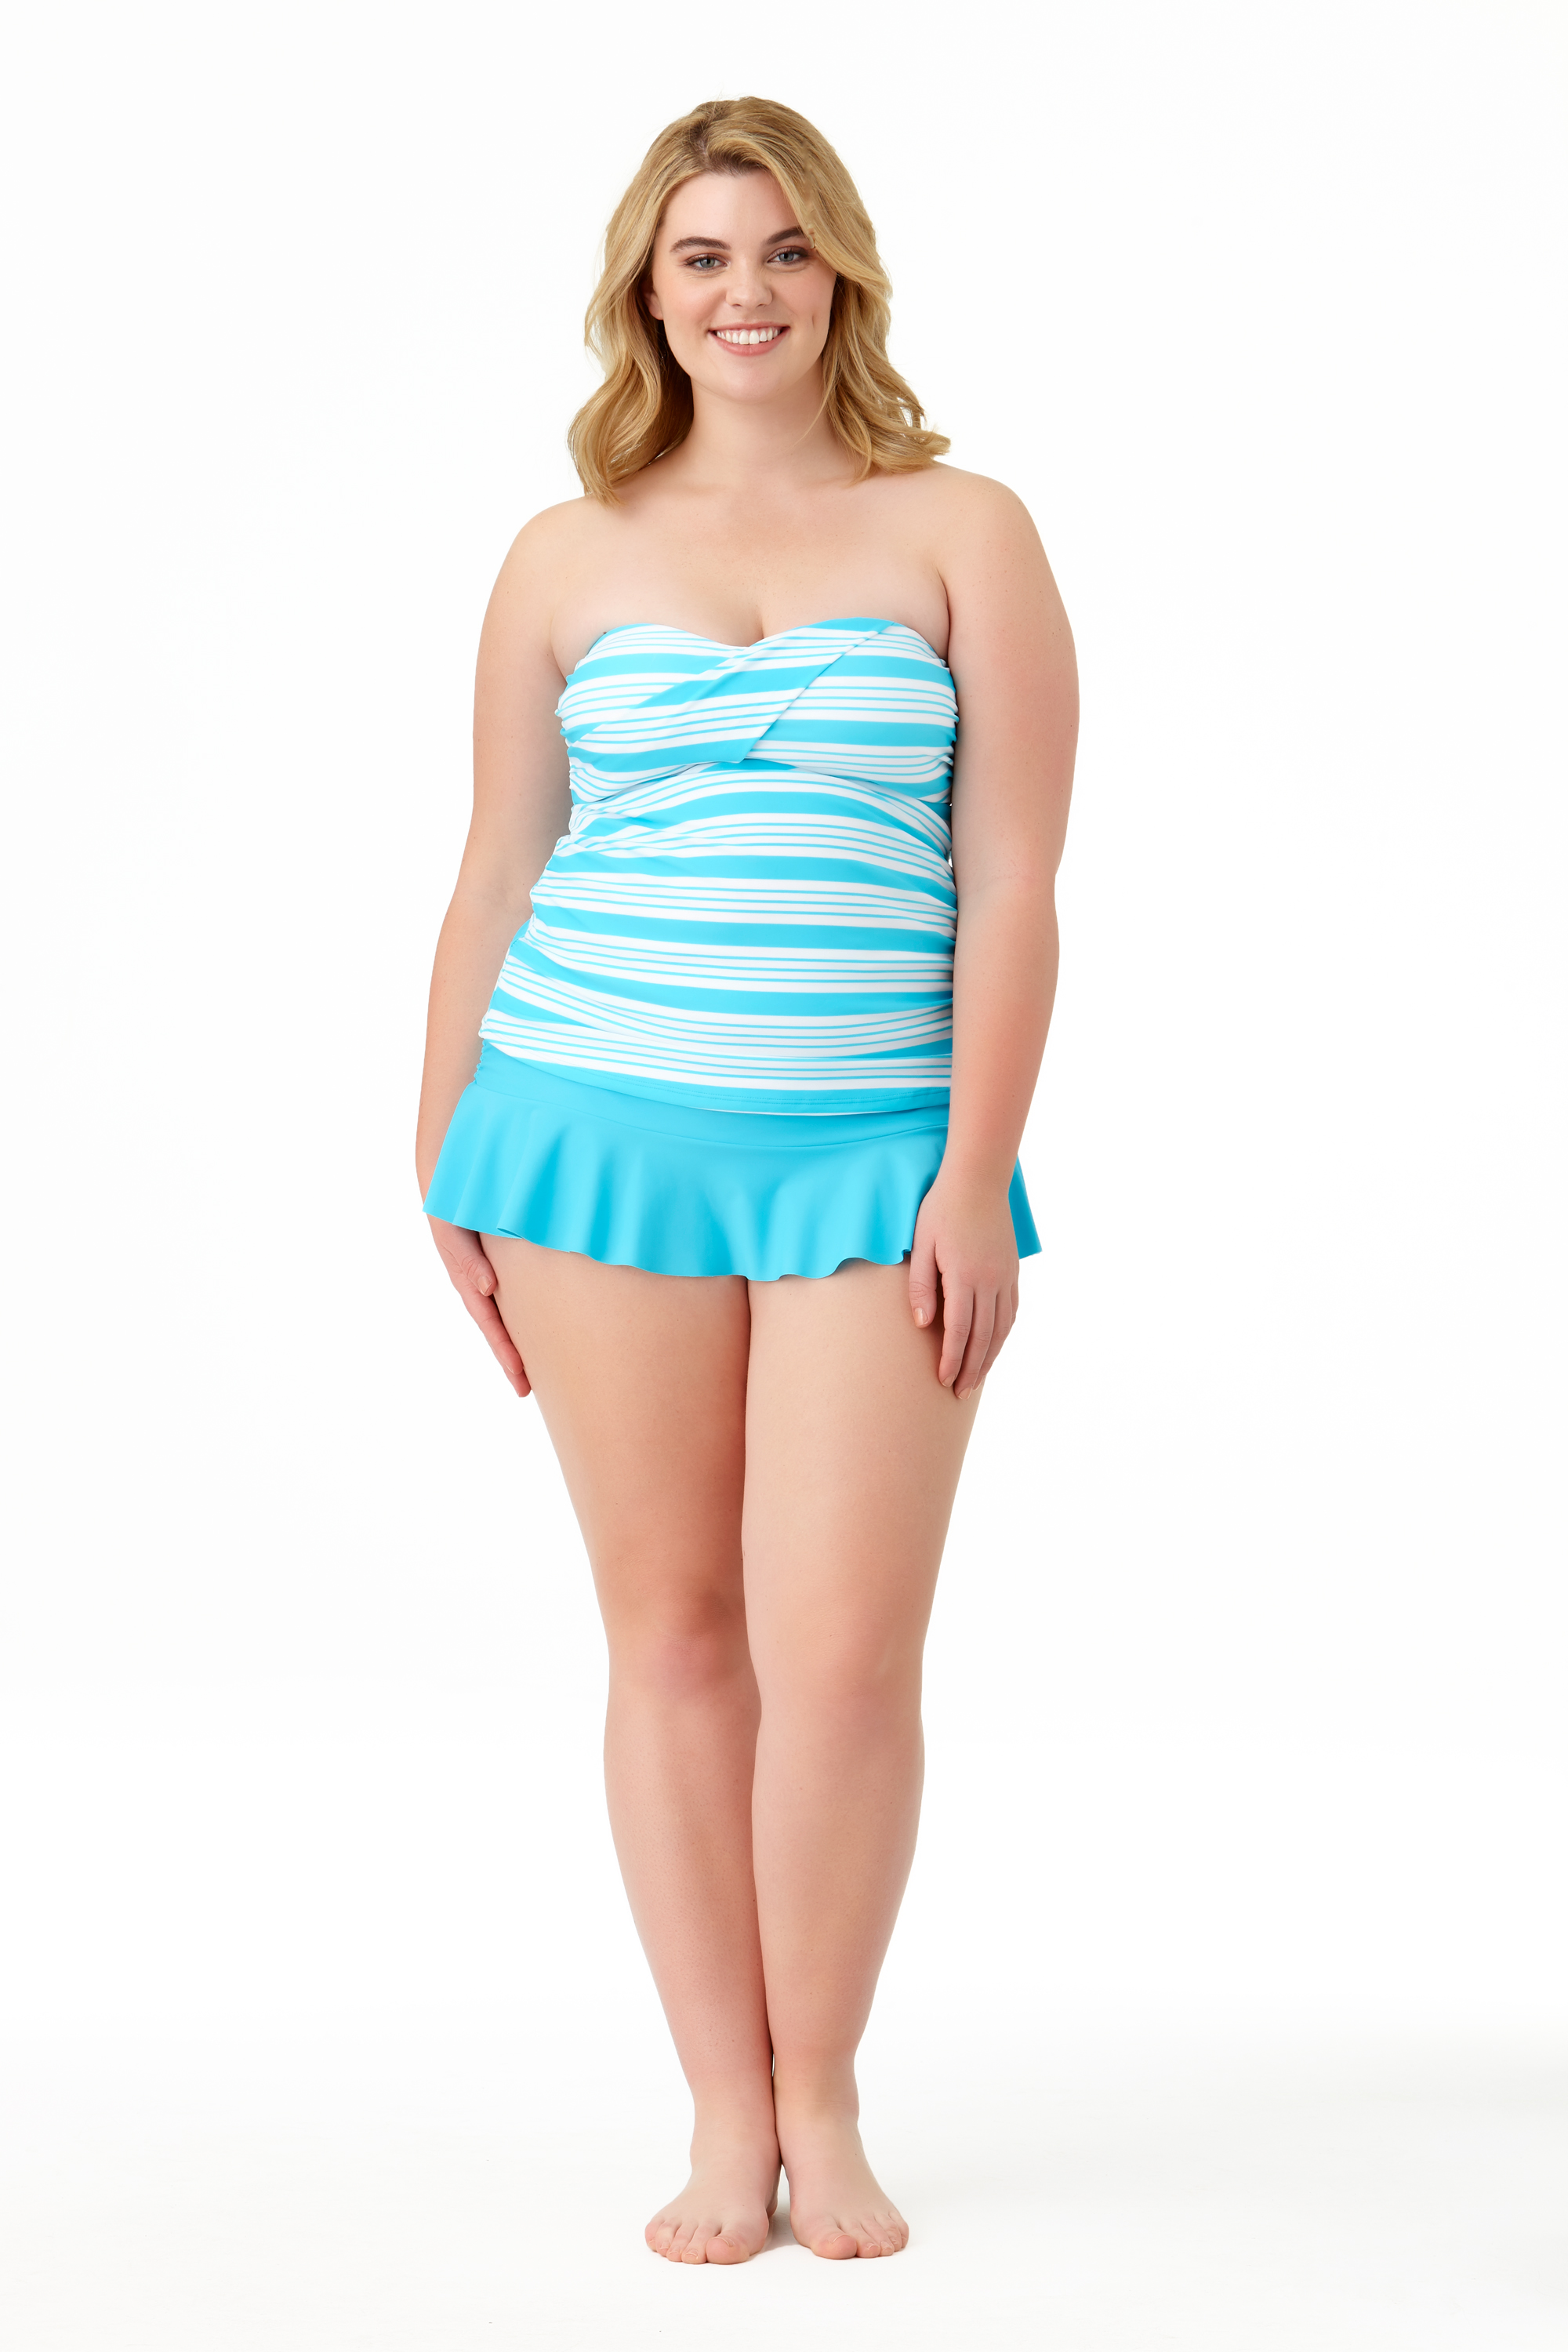 STYLE #CTP27401T /CTP27700B - Melbourne Stripe Twist BandiniSOLD OUTSolid Ruffle Skirted BottomSOLD OUT